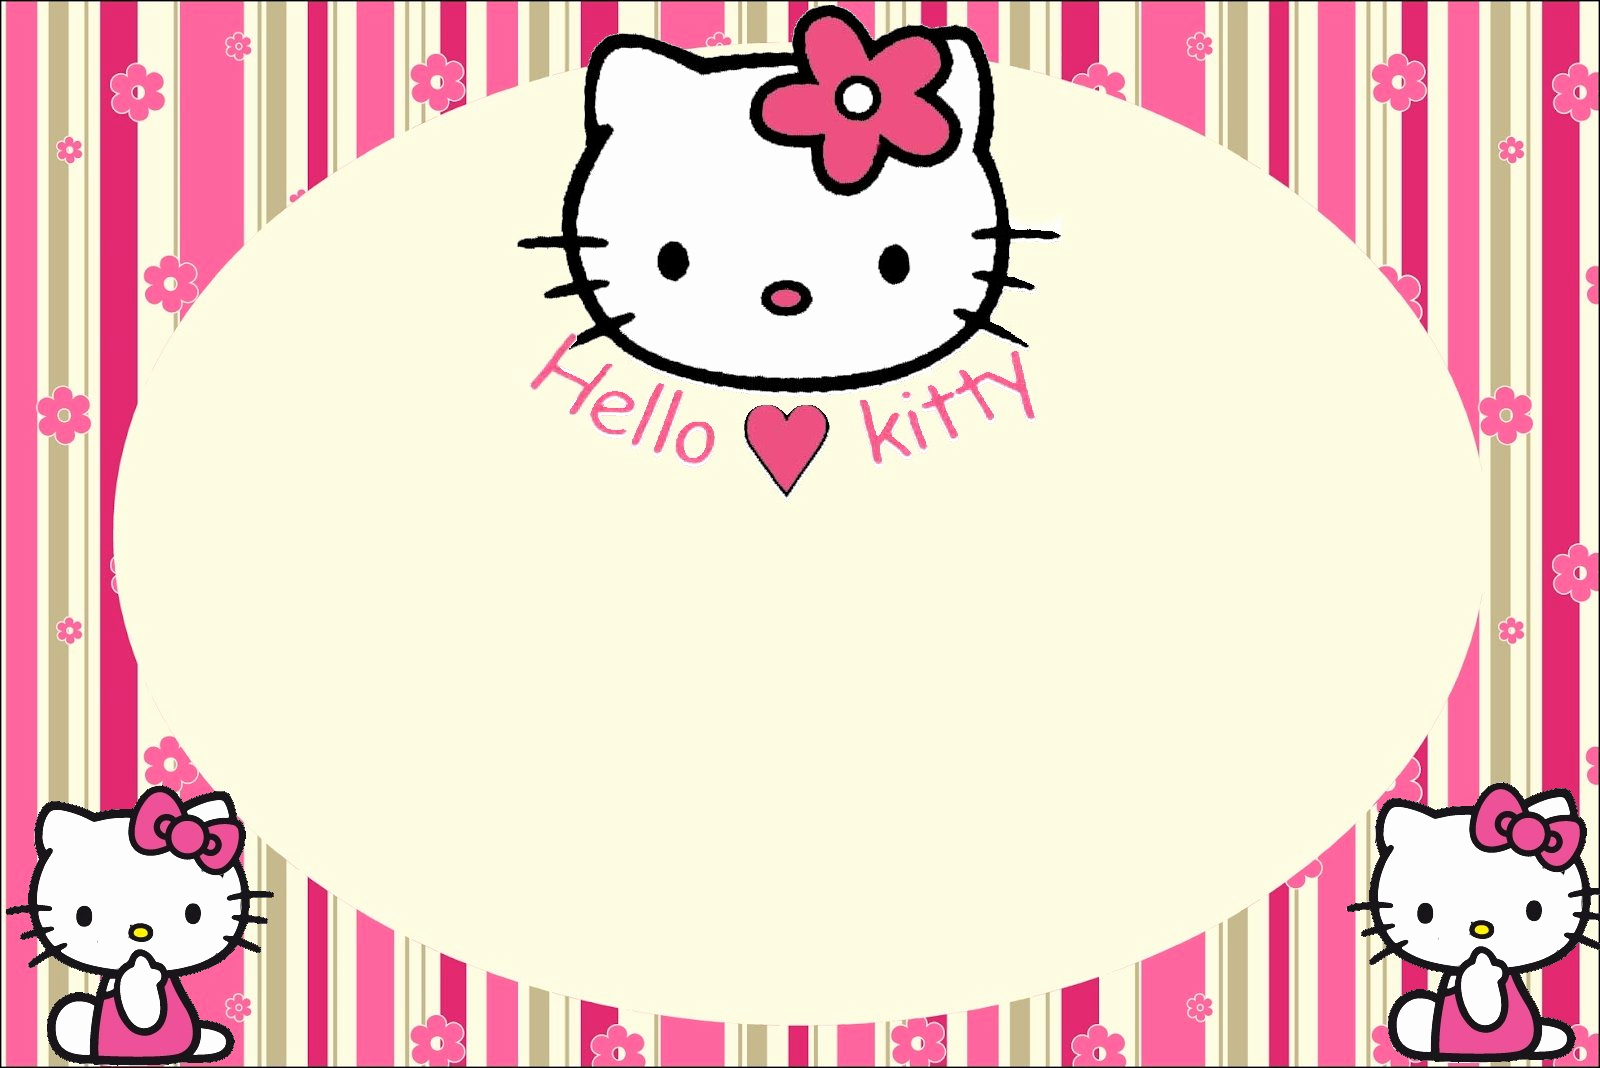 Hello Kitty Printable Invitation Inspirational Hello Kitty with Flowers Free Printable Invitations